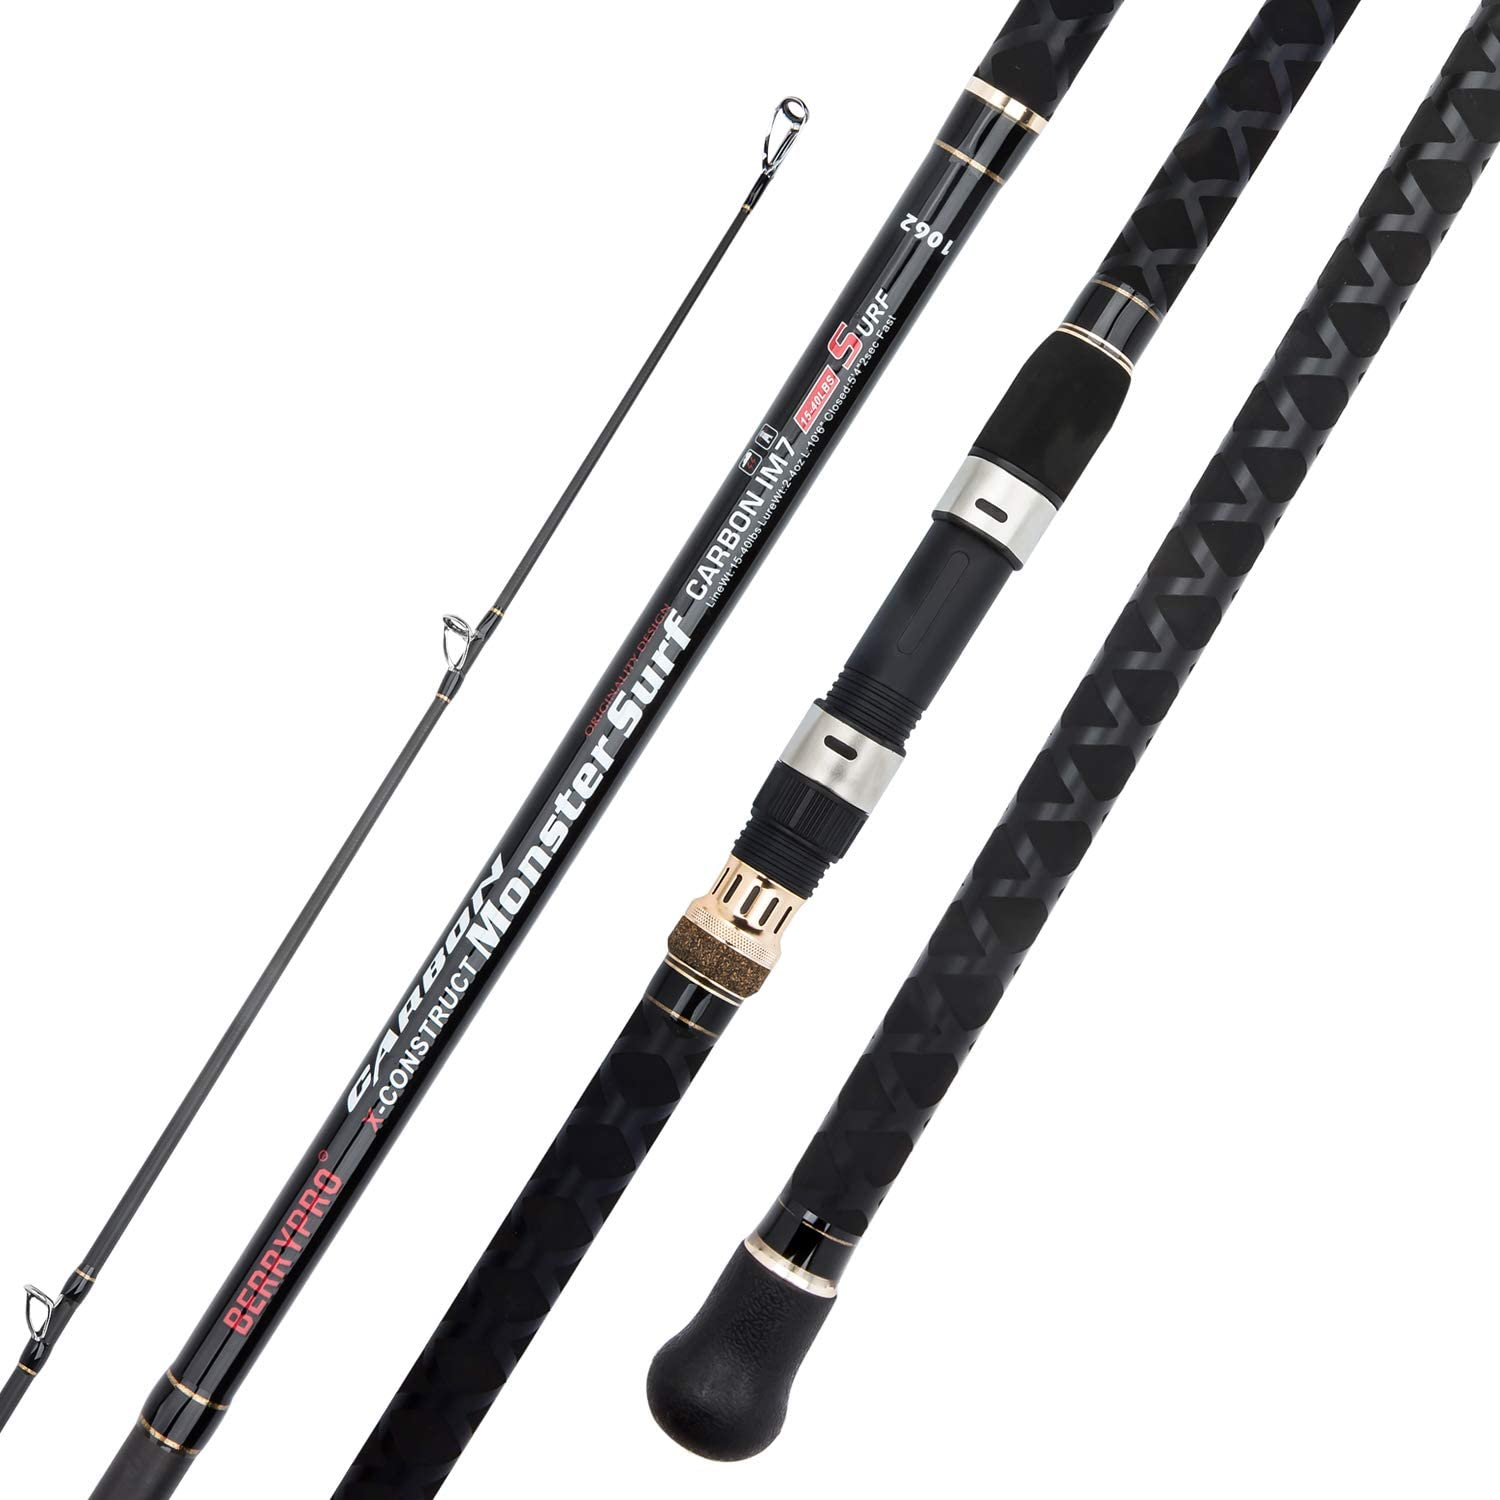 BERRYPRO Surf Spinning Fishing Rod Graphite Spinning Rod (9-Feet & 10-Feet & 10.6-Feet & 11-Feet & 12-Feet & 13.3-Feet)